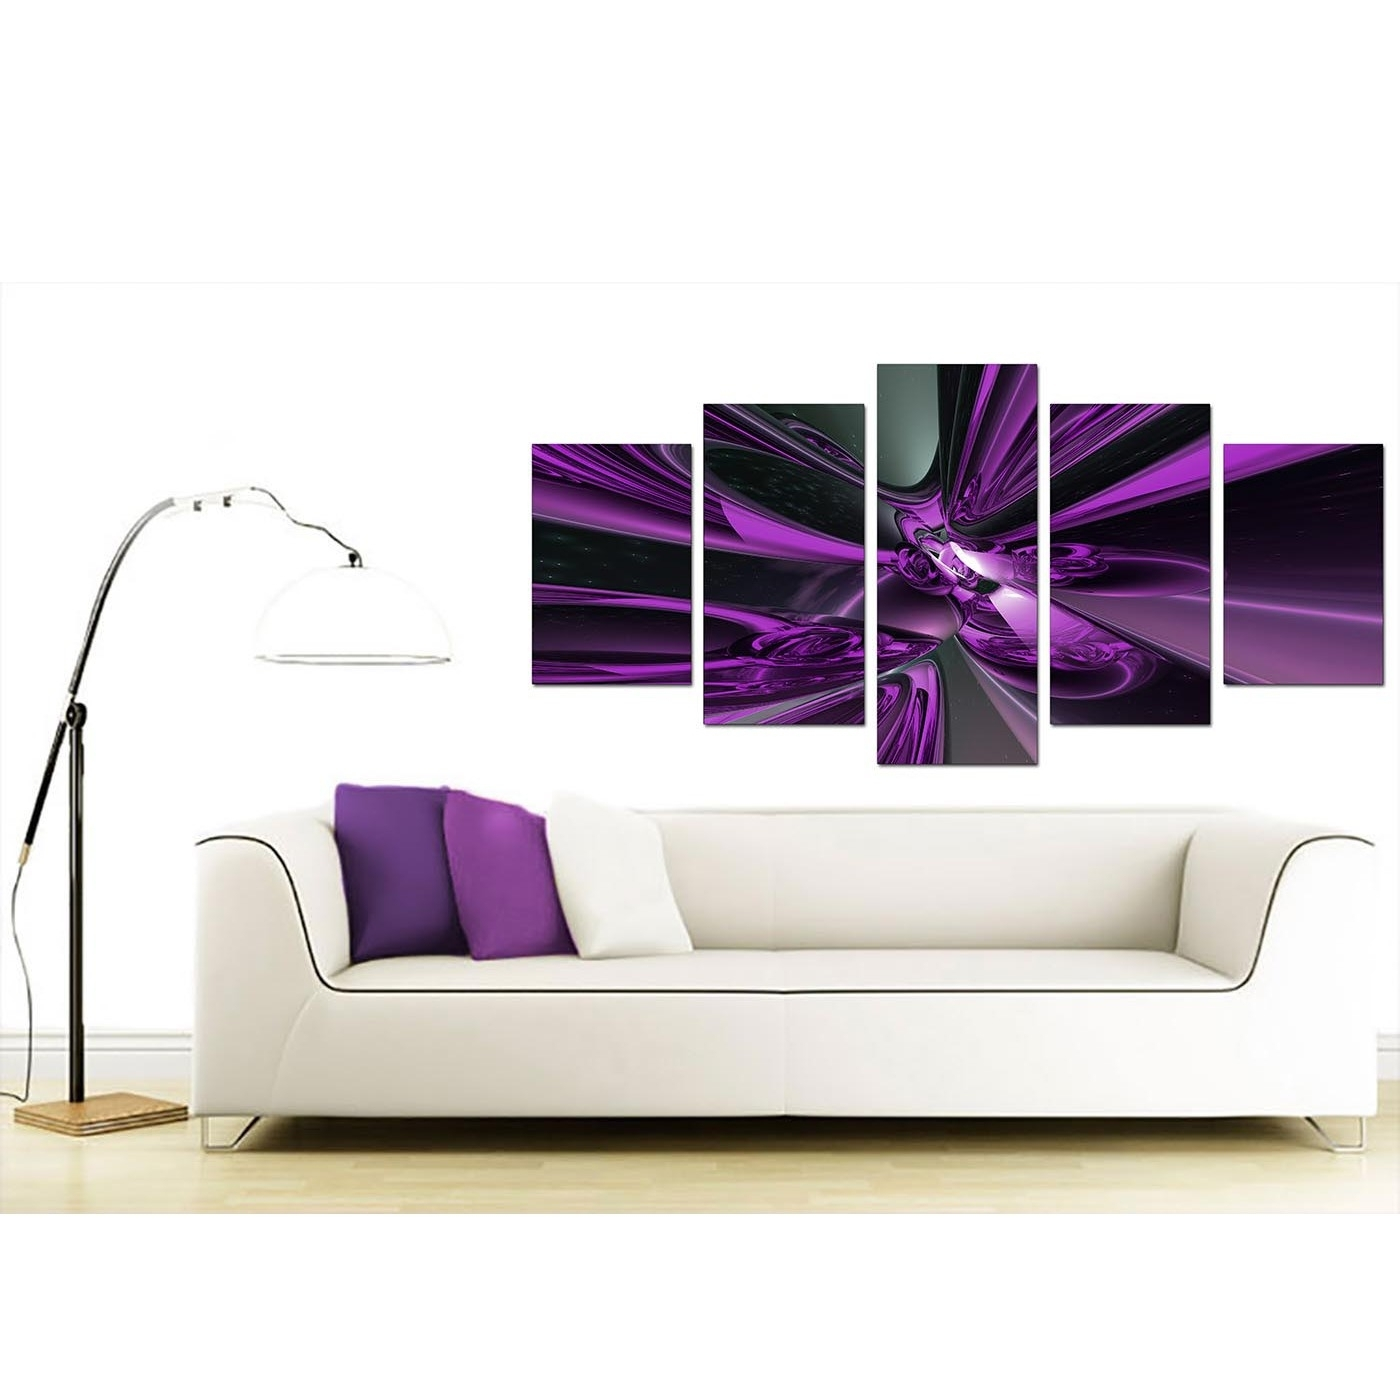 Extra Large Purple Abstract Canvas Prints Uk – 5 Piece Within Recent 5 Piece Wall Art Canvas (View 13 of 15)